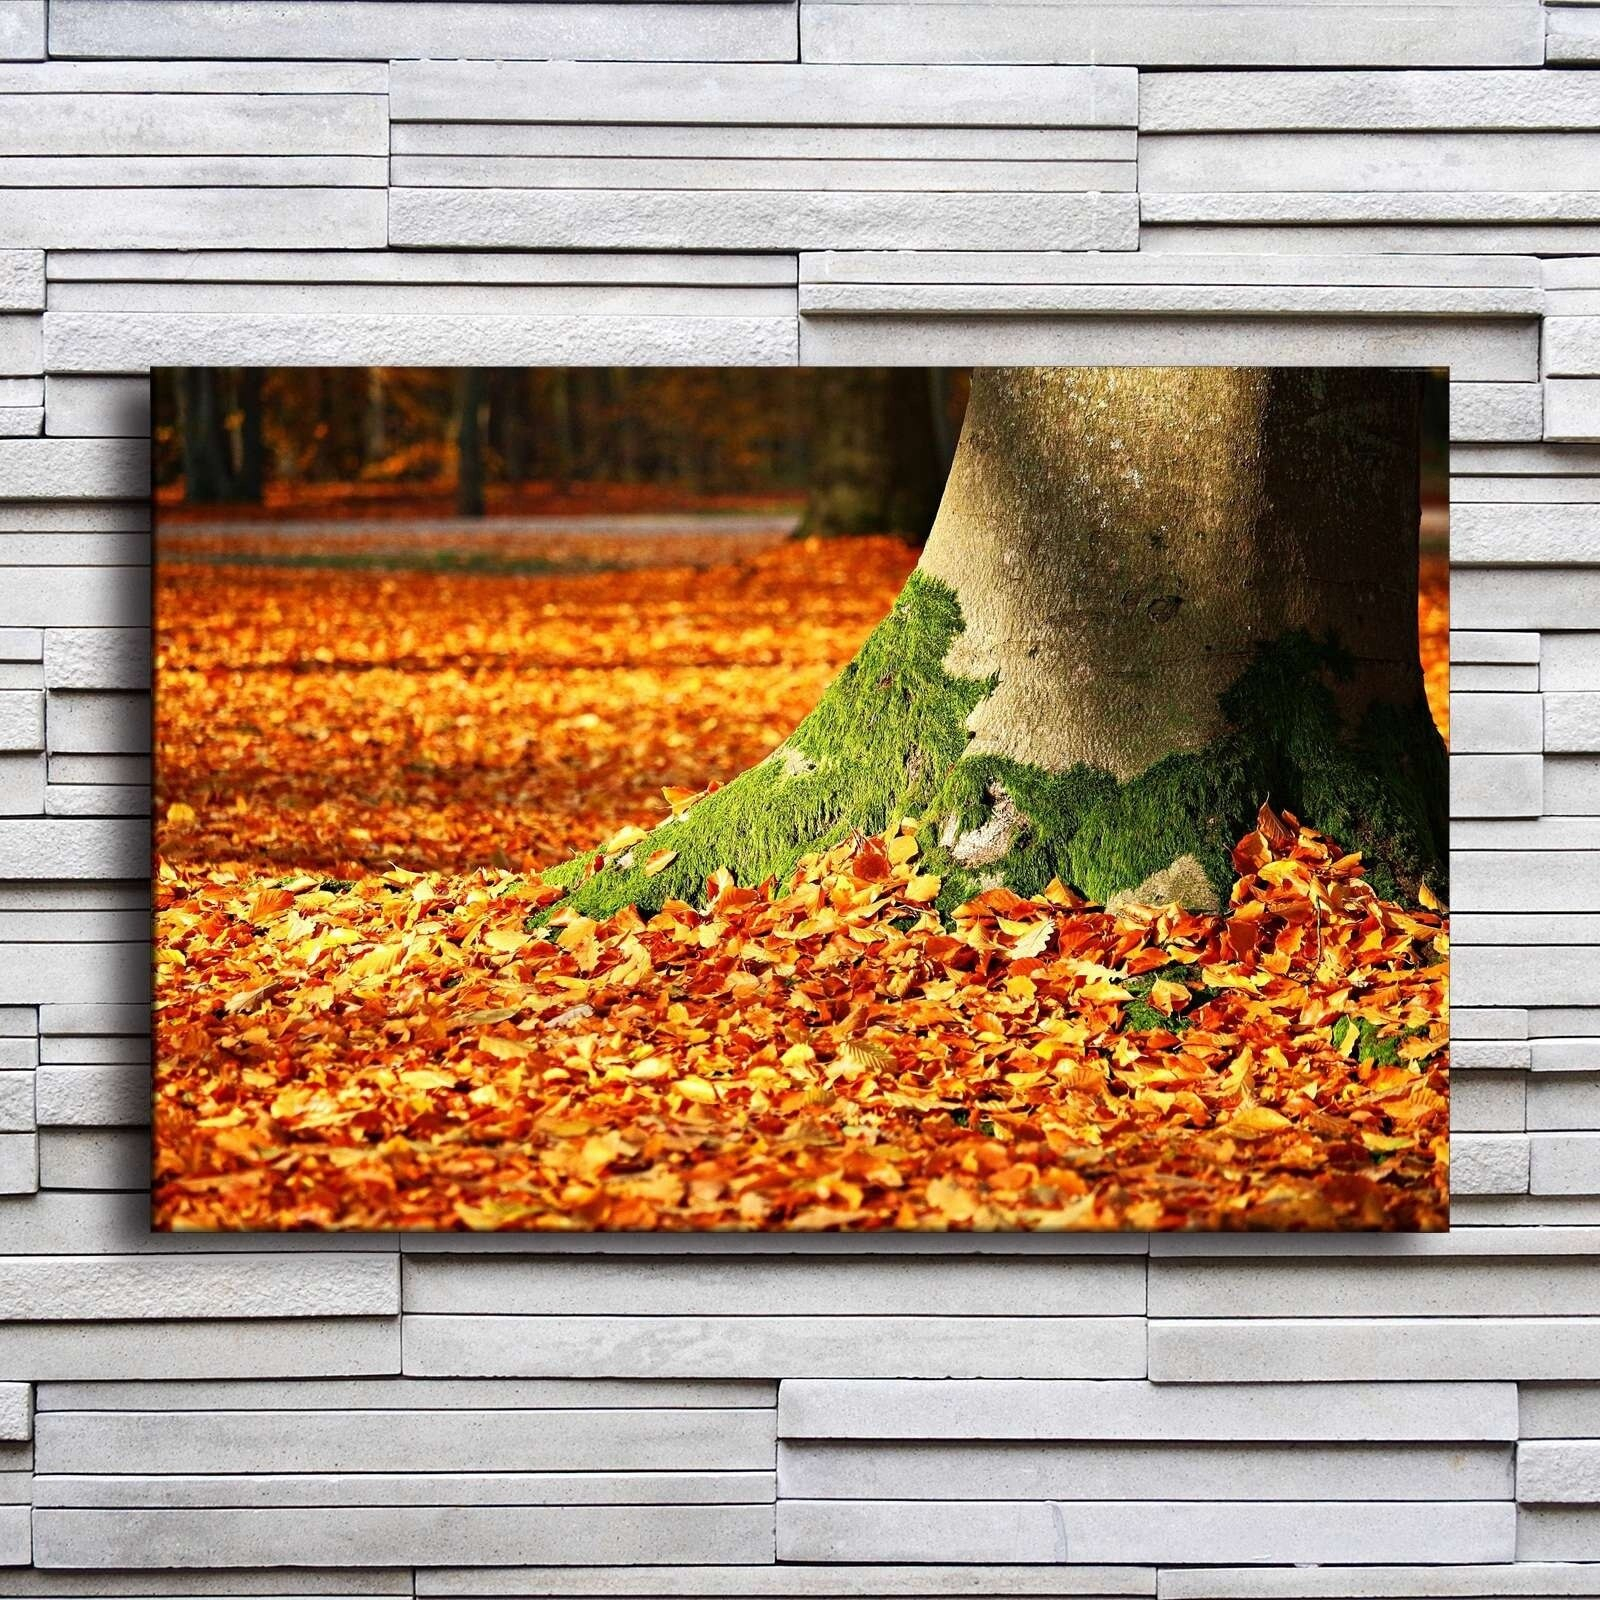 Us $2.5 47% Off|Home Decor Canvas Painting Wall Art 1 Piece Autumn Forest  Fall Blowing Leaves Tree Trunk Pictures Prints Poster For Living Room-In inside Blowing Leaves Wall Decor (Image 28 of 30)